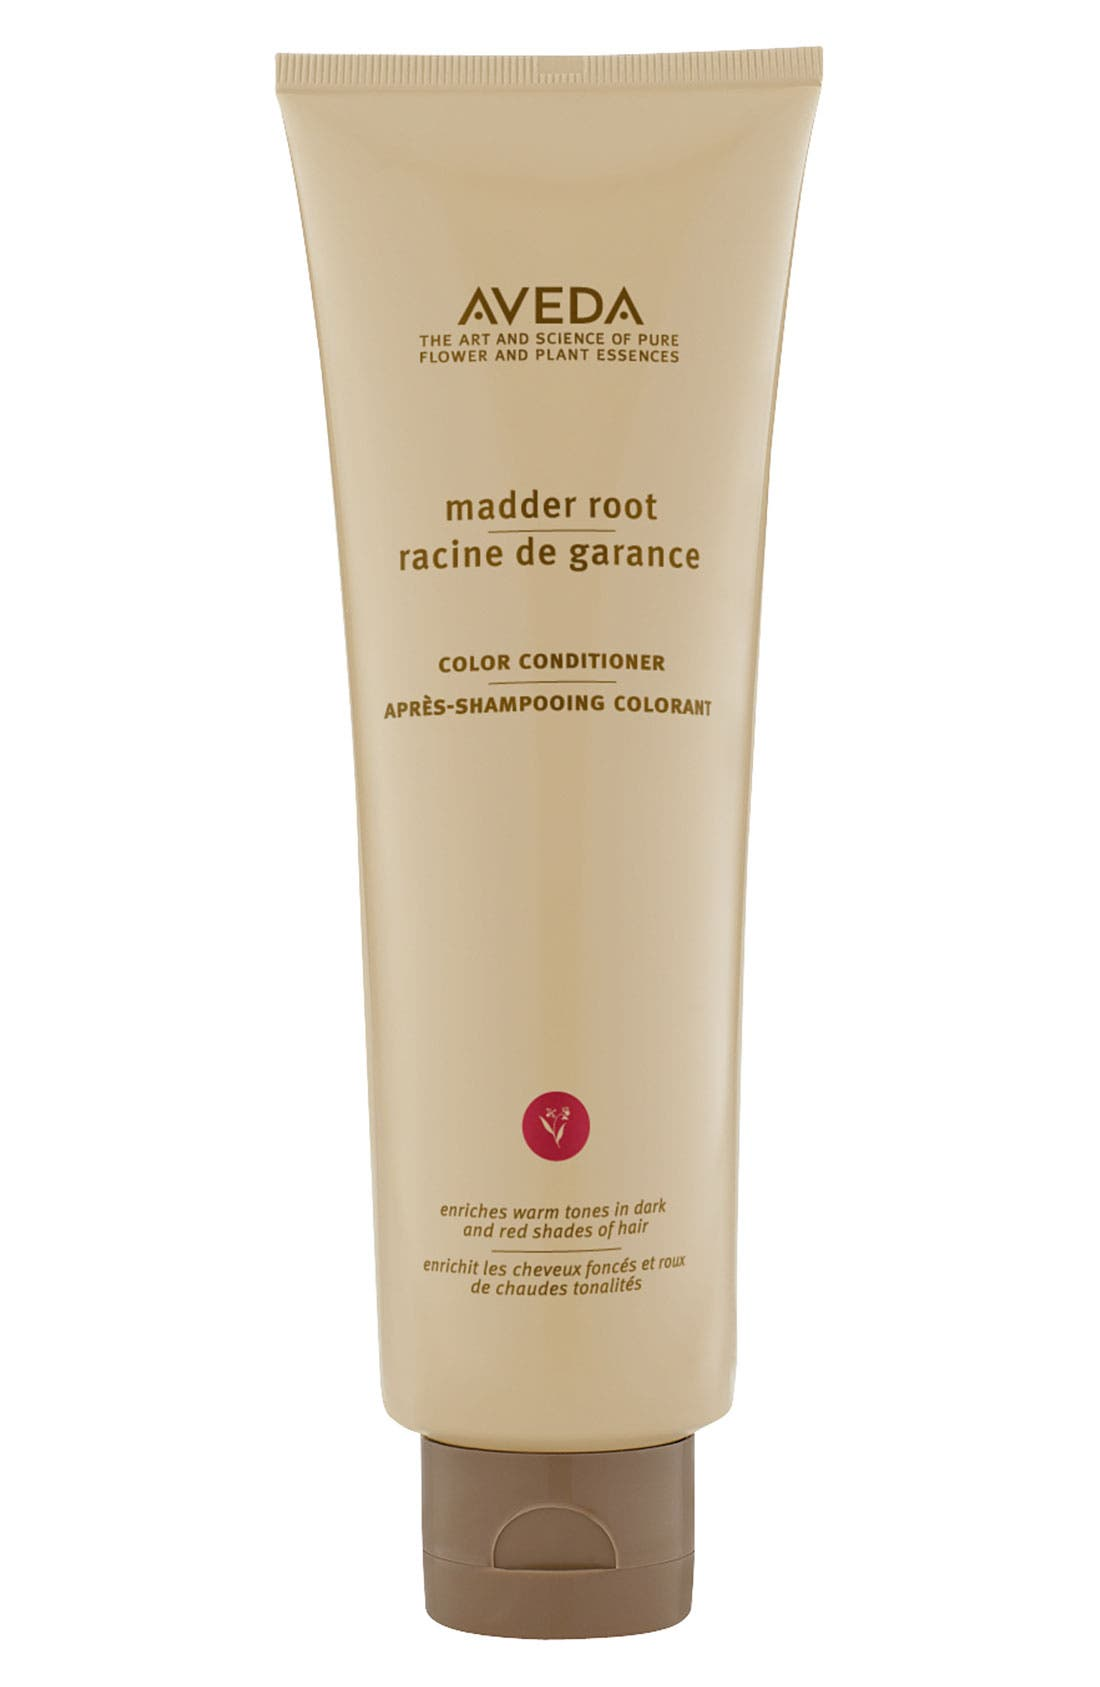 Aveda 'Madder Root' Color Conditioner